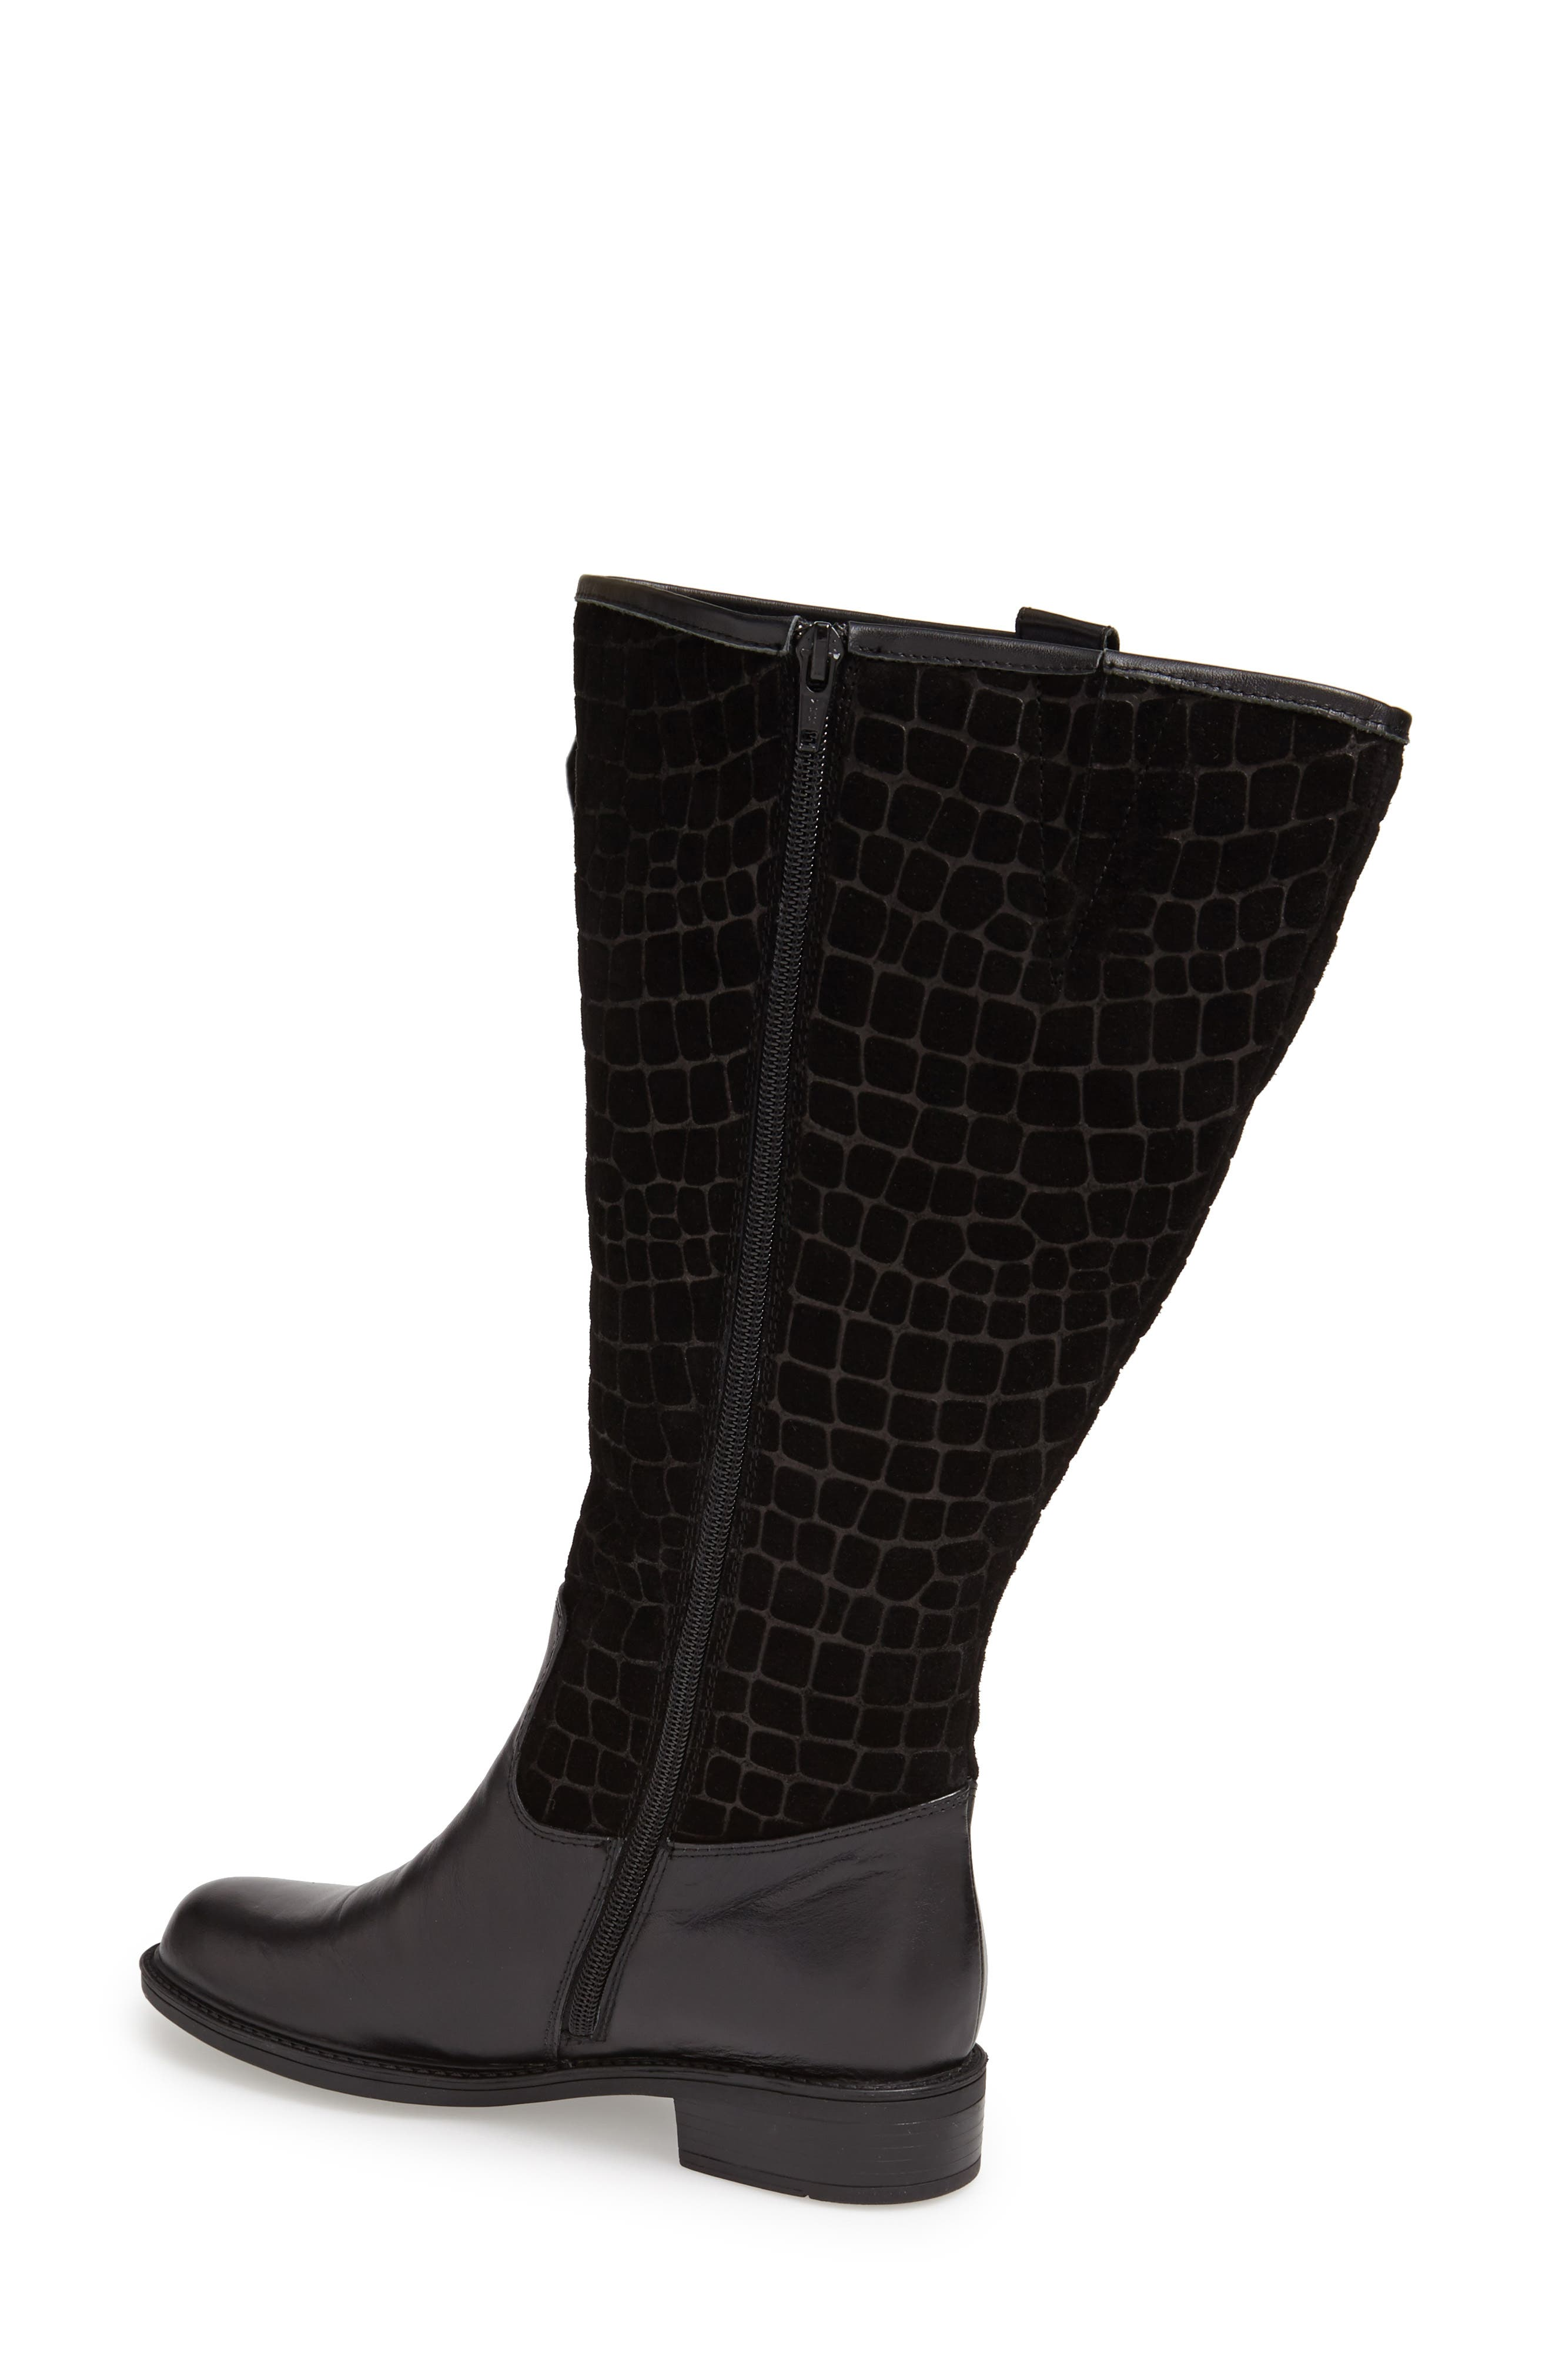 'Best' Calfskin Leather & Suede Boot,                             Alternate thumbnail 11, color,